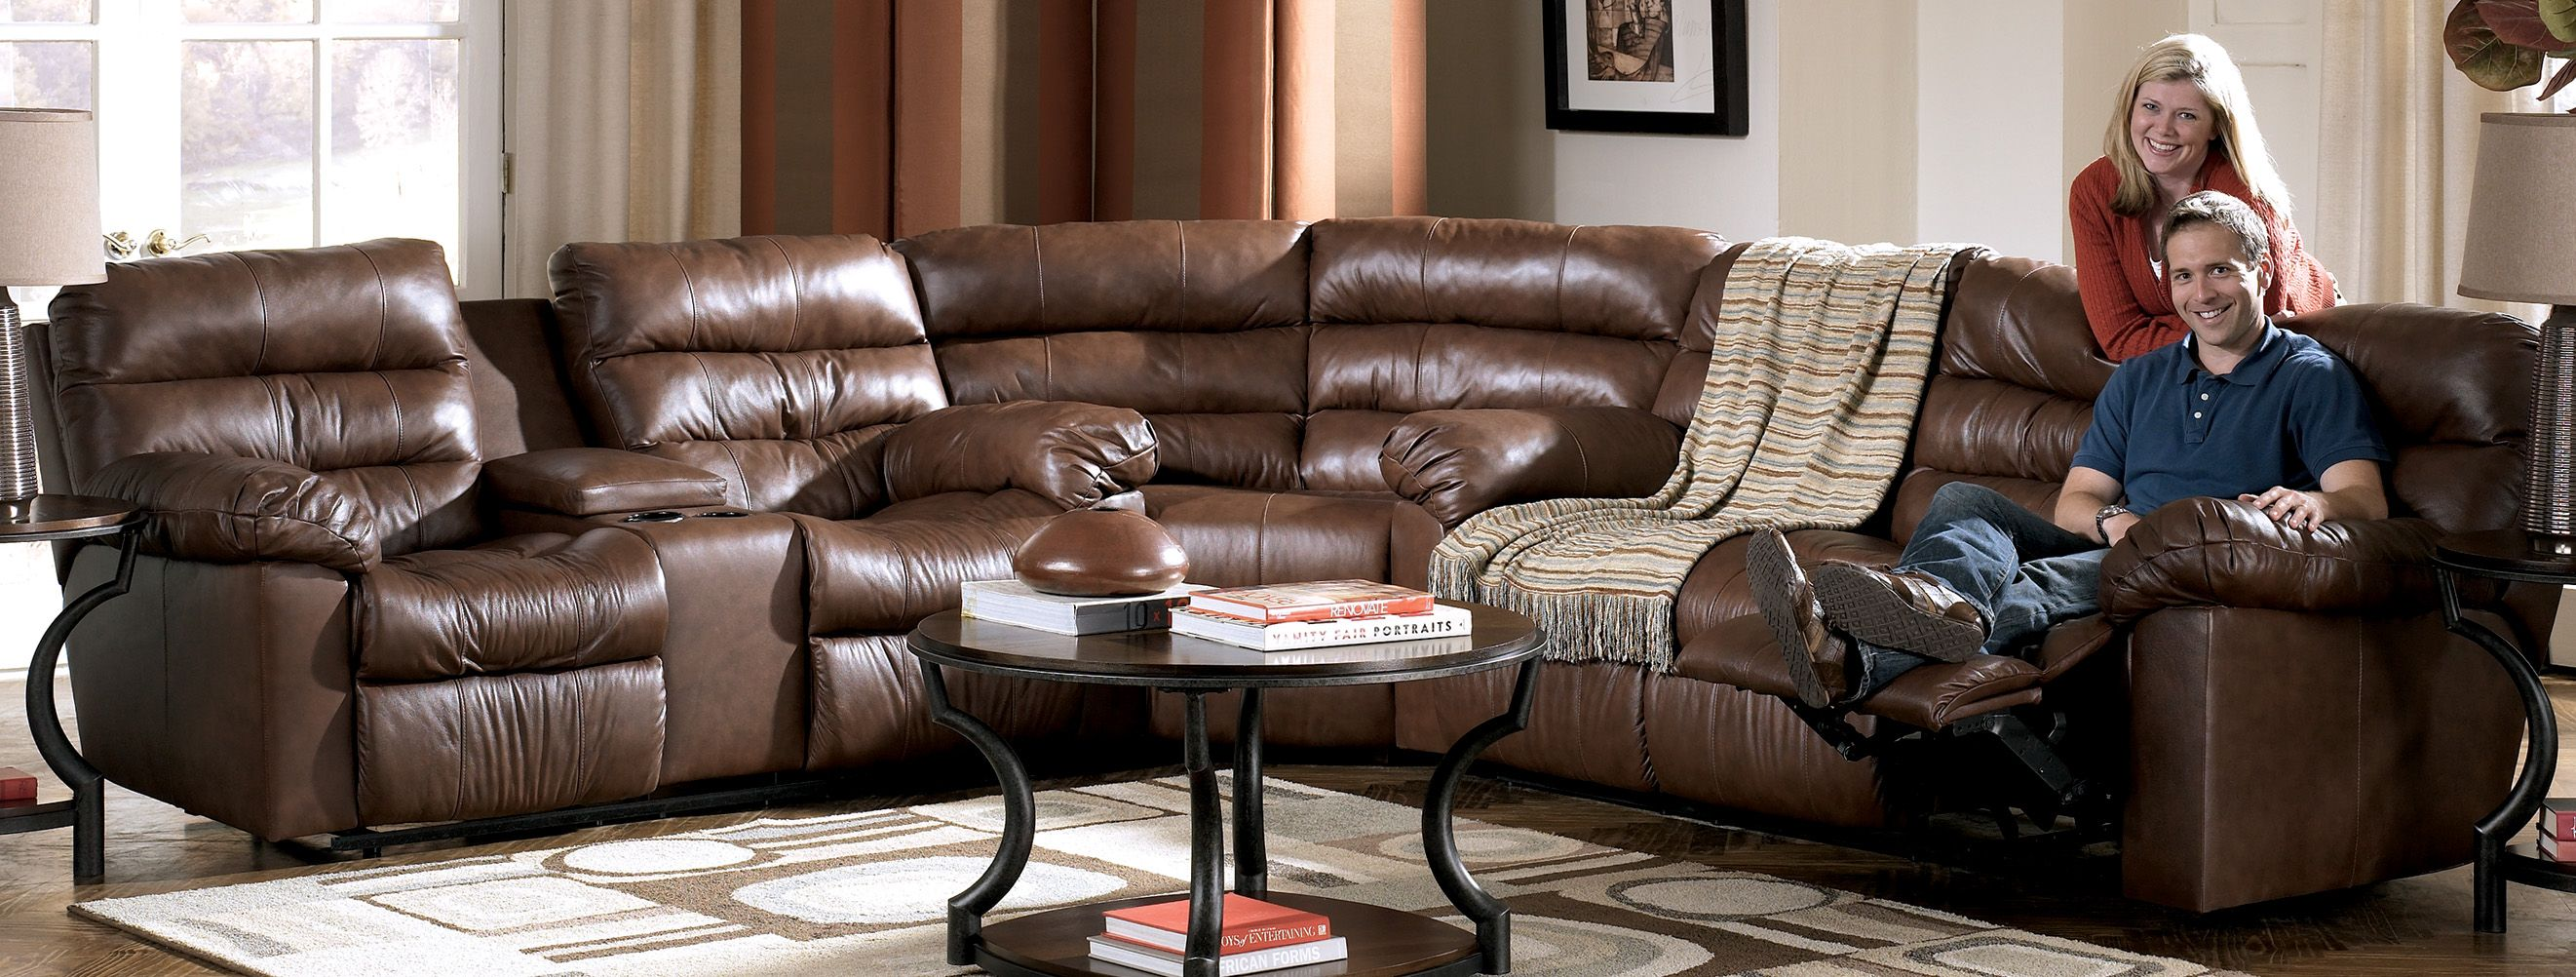 Reclining Leather Sectional Sofa With 4 Recliners And A Console 2099 As Shown